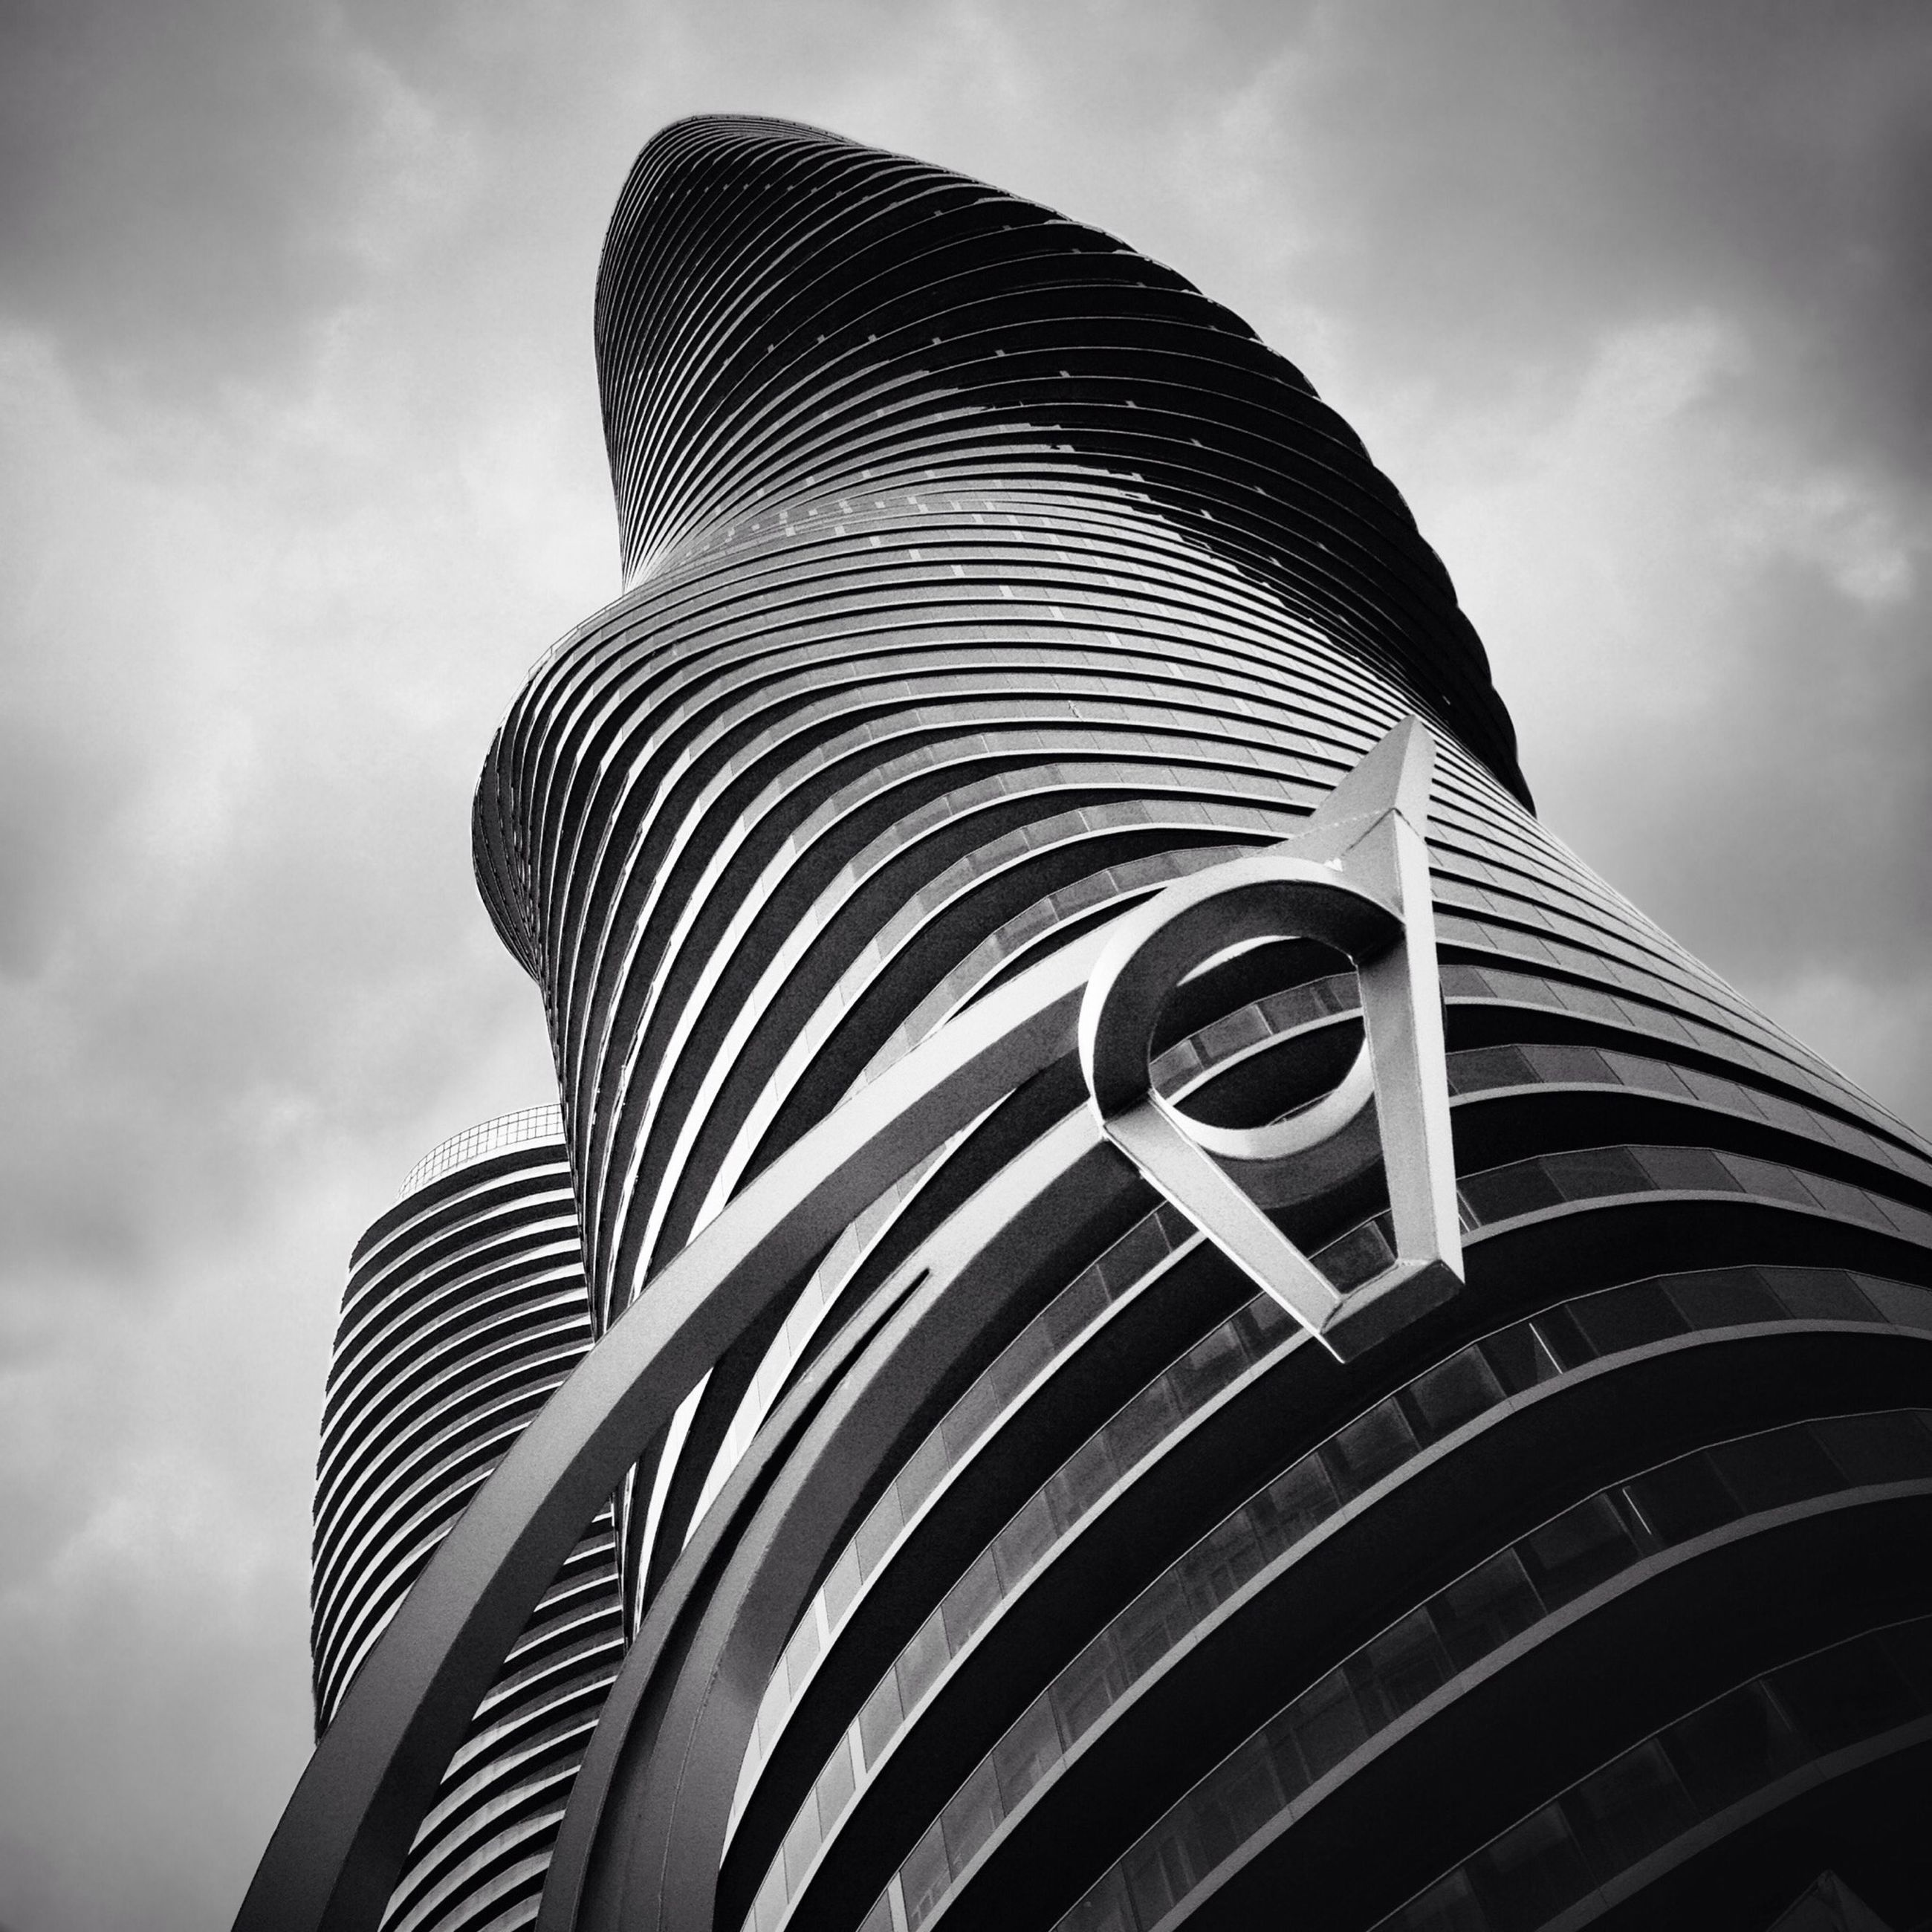 low angle view, sky, cloud - sky, architecture, built structure, building exterior, cloudy, cloud, no people, outdoors, modern, day, pattern, architectural feature, design, city, arts culture and entertainment, famous place, tall - high, metal